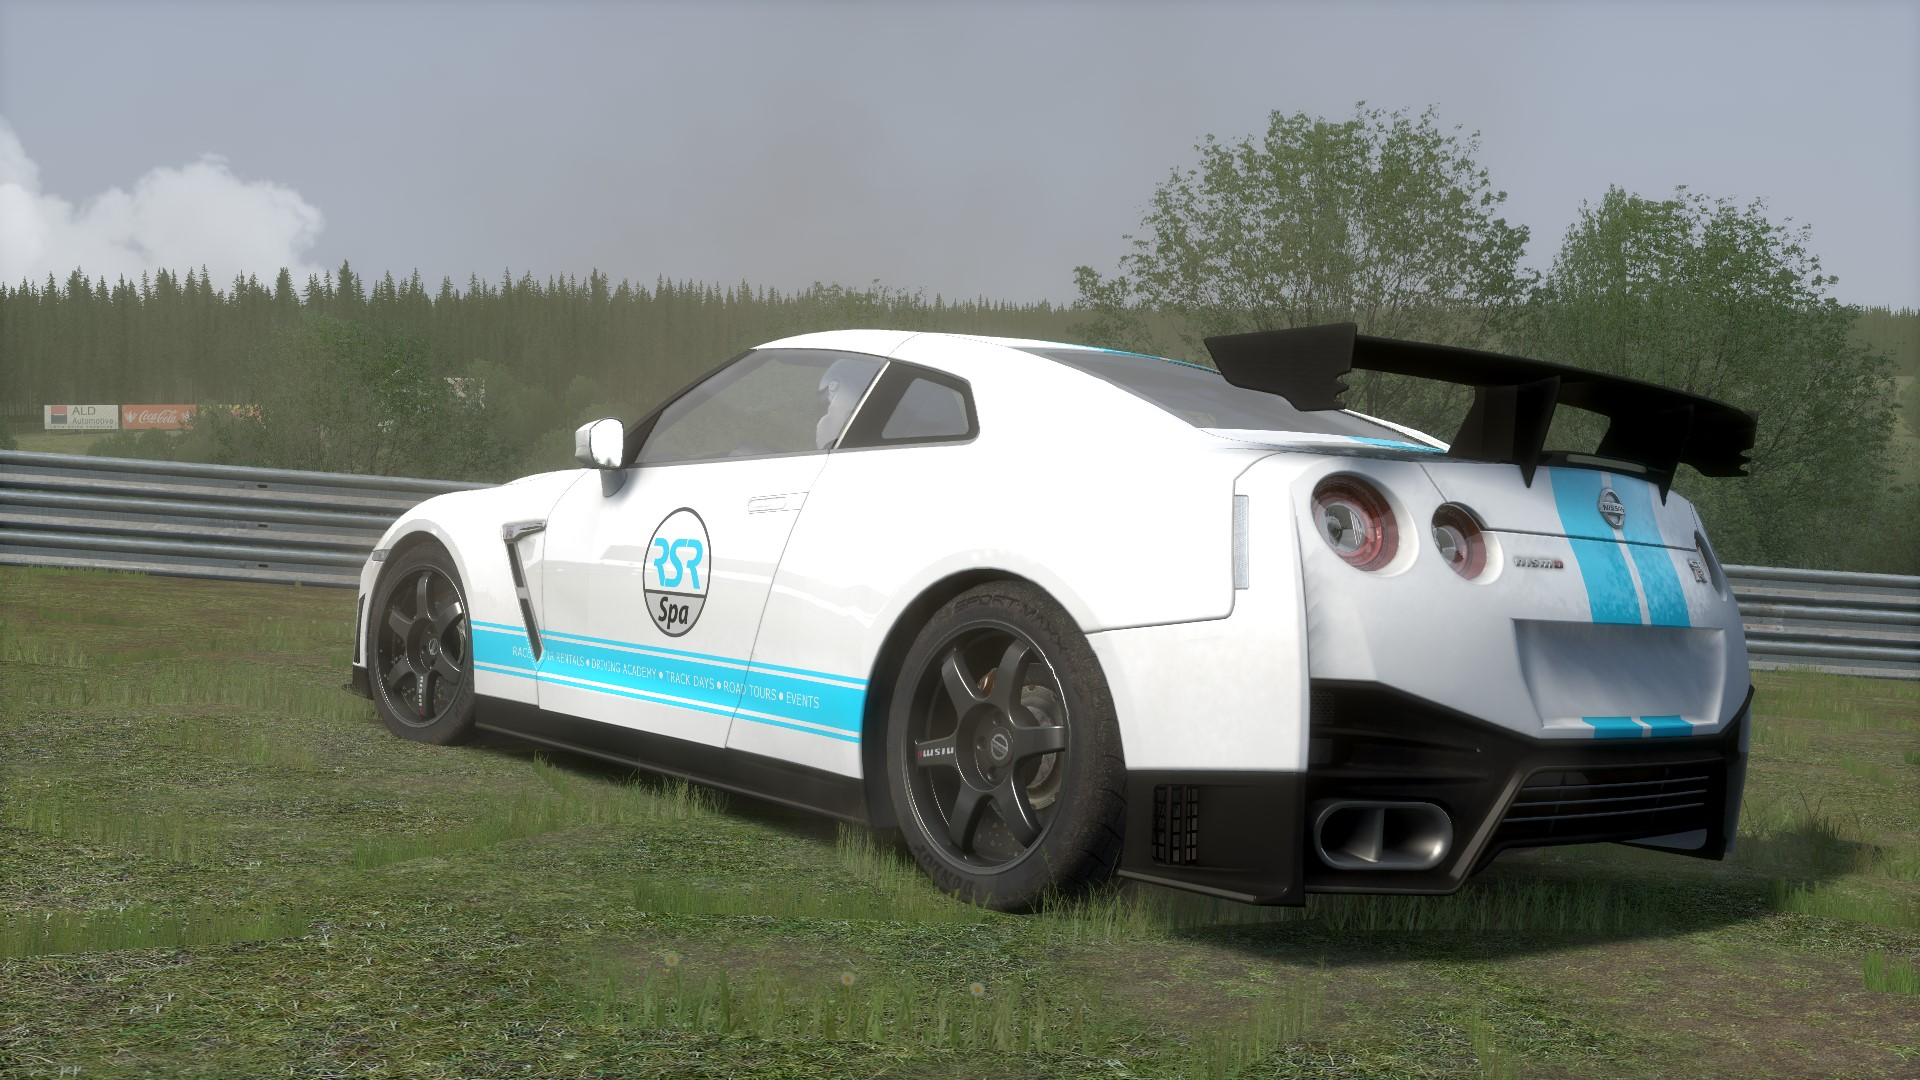 Screenshot_ks_nissan_gtr_spa_8-9-115-19-45-27.jpg